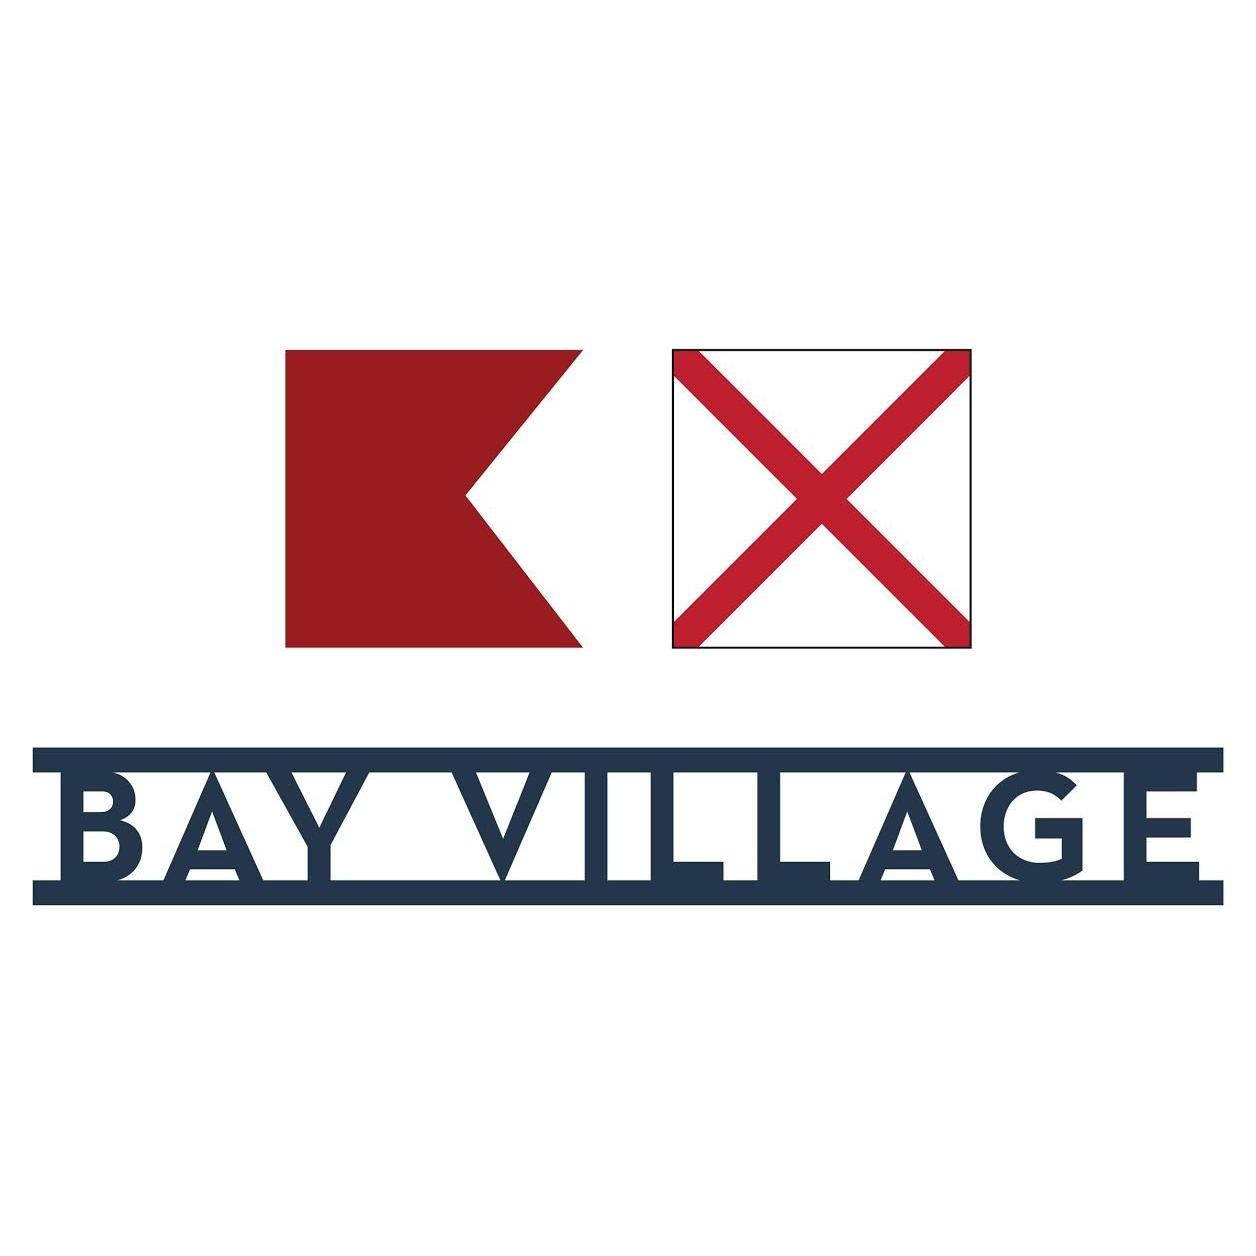 Bay Village image 9